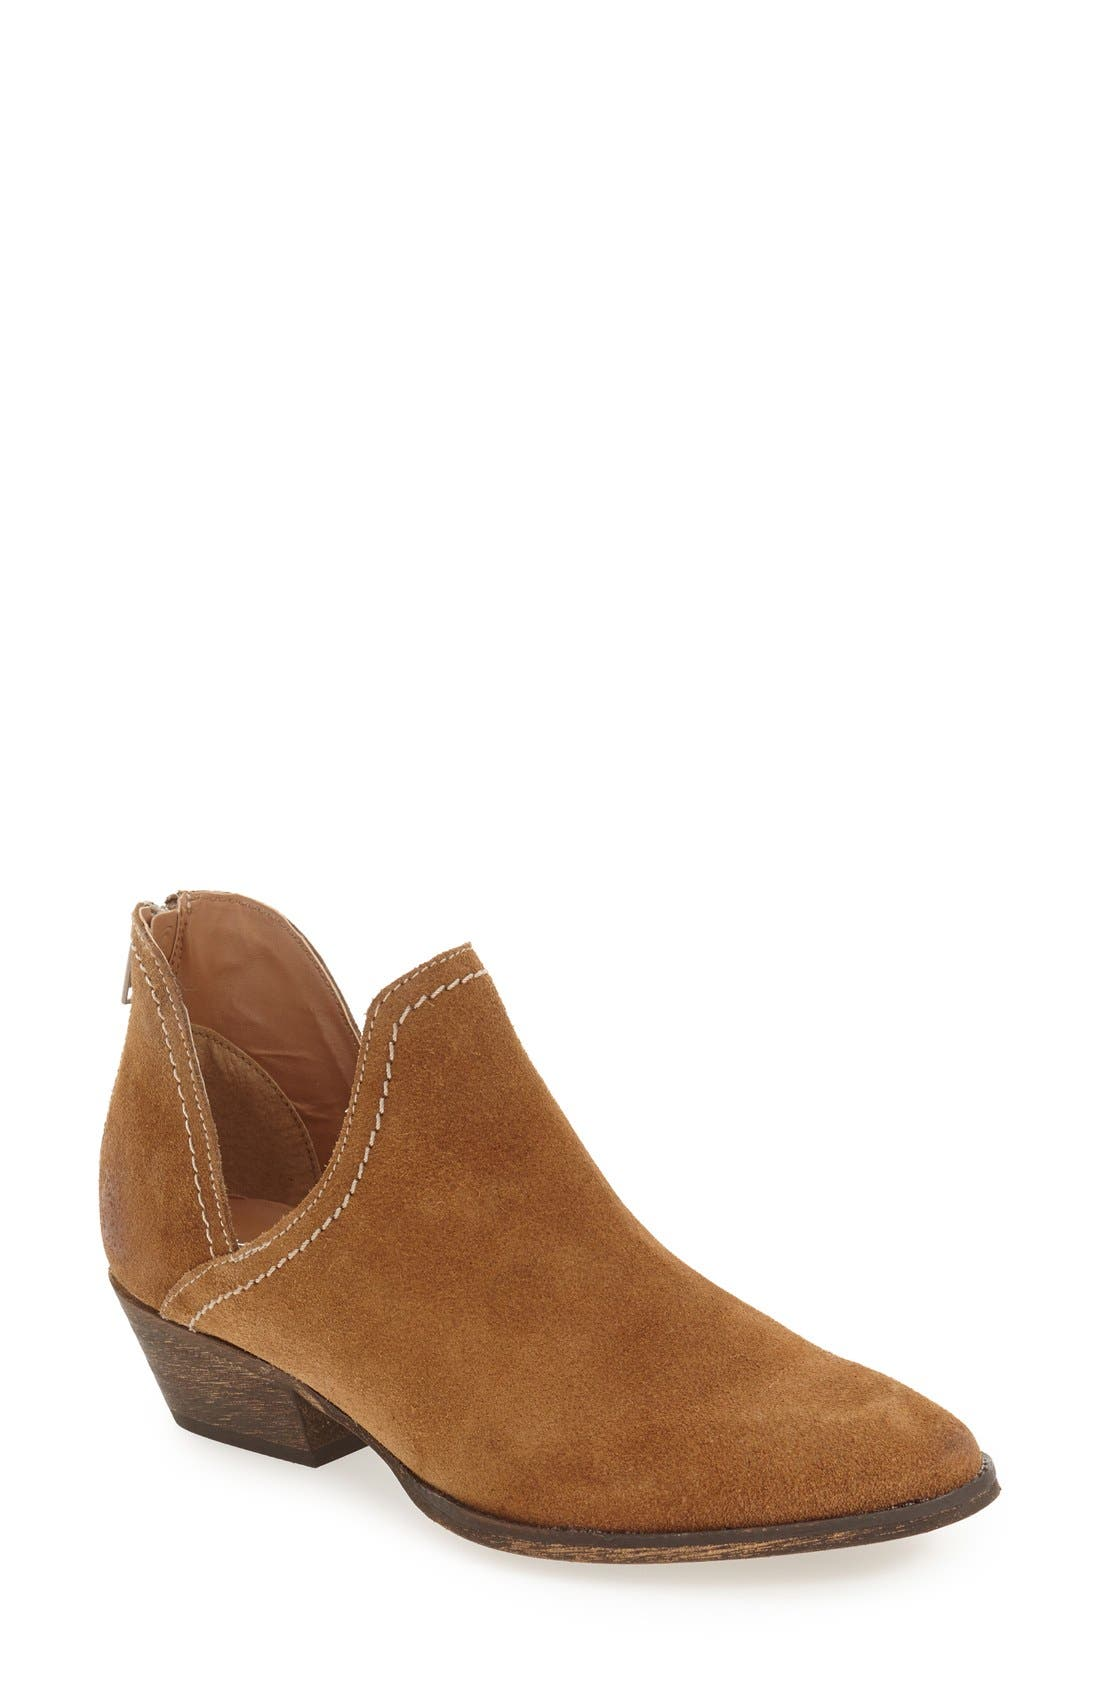 'Bai' Bootie,                             Main thumbnail 1, color,                             Tobacco Suede